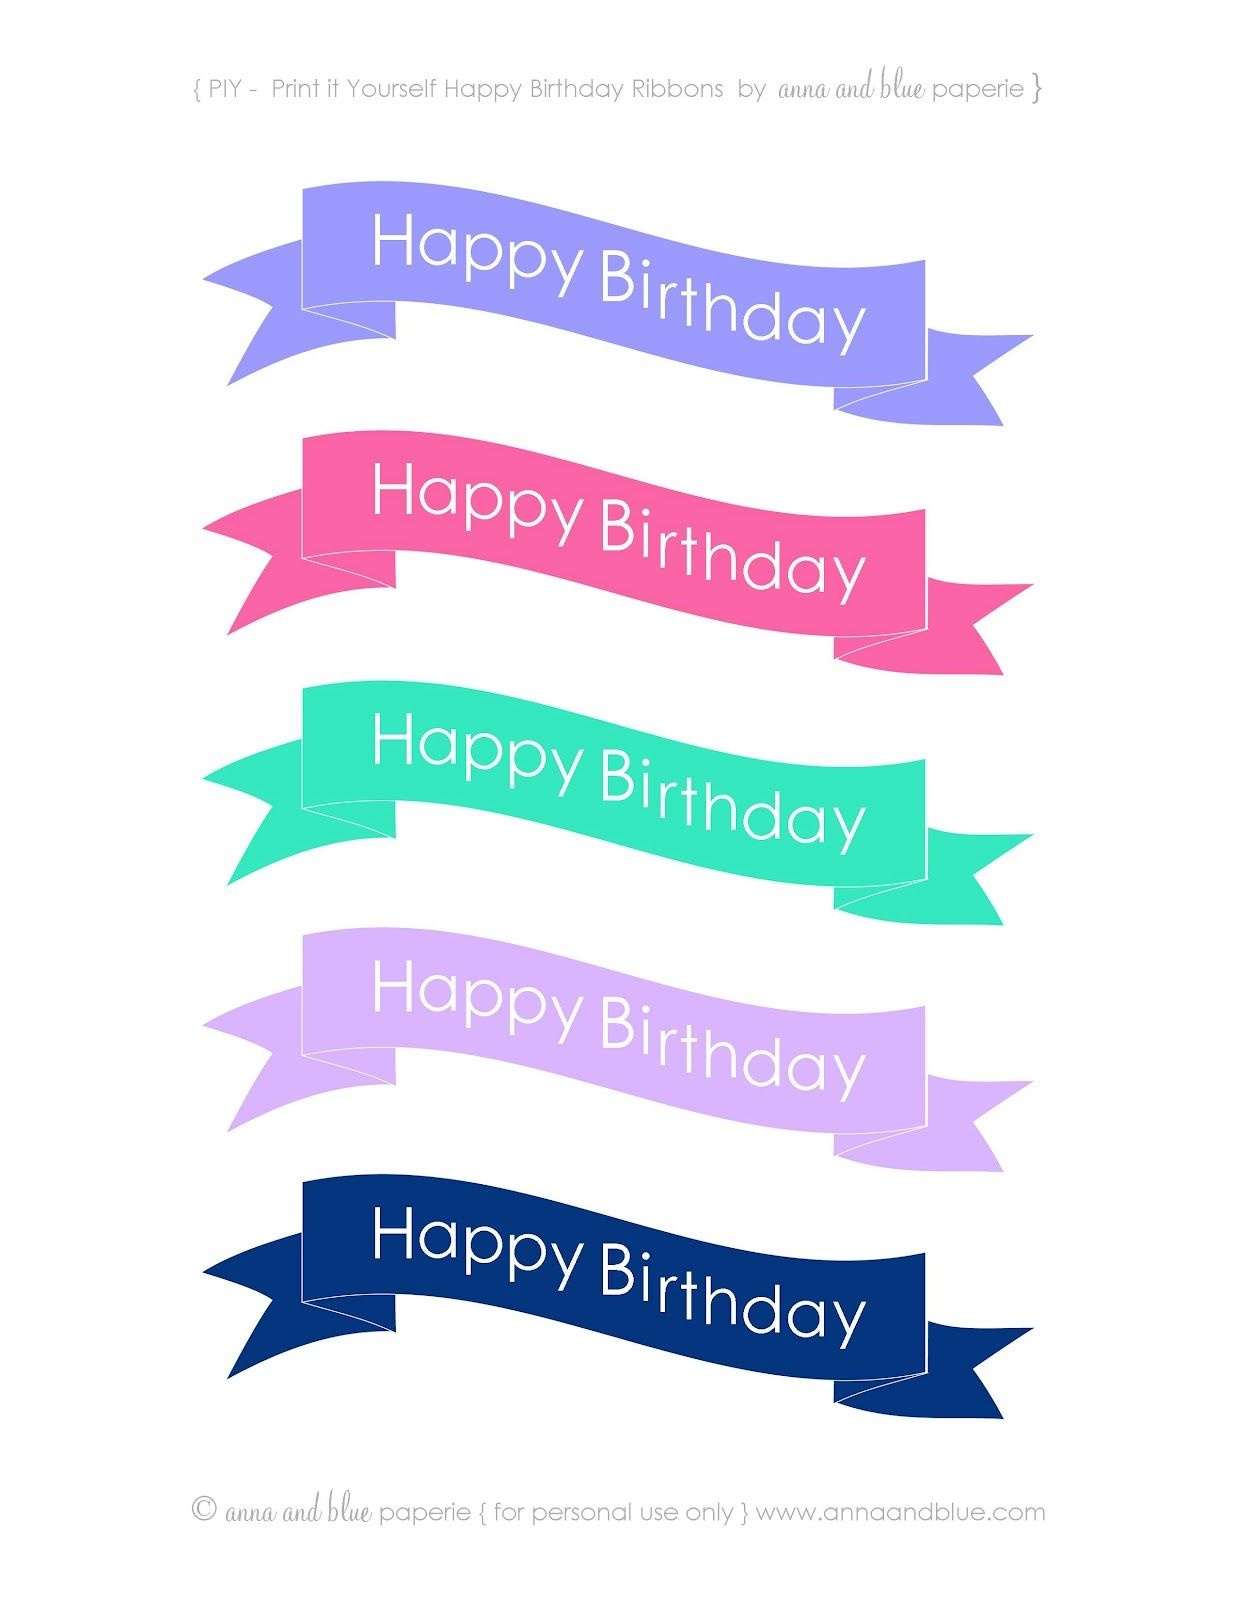 Anna And Blue Paperie: {Free Printable} Happy Birthday Cake Banners - Free Printable Happy Birthday Cake Topper